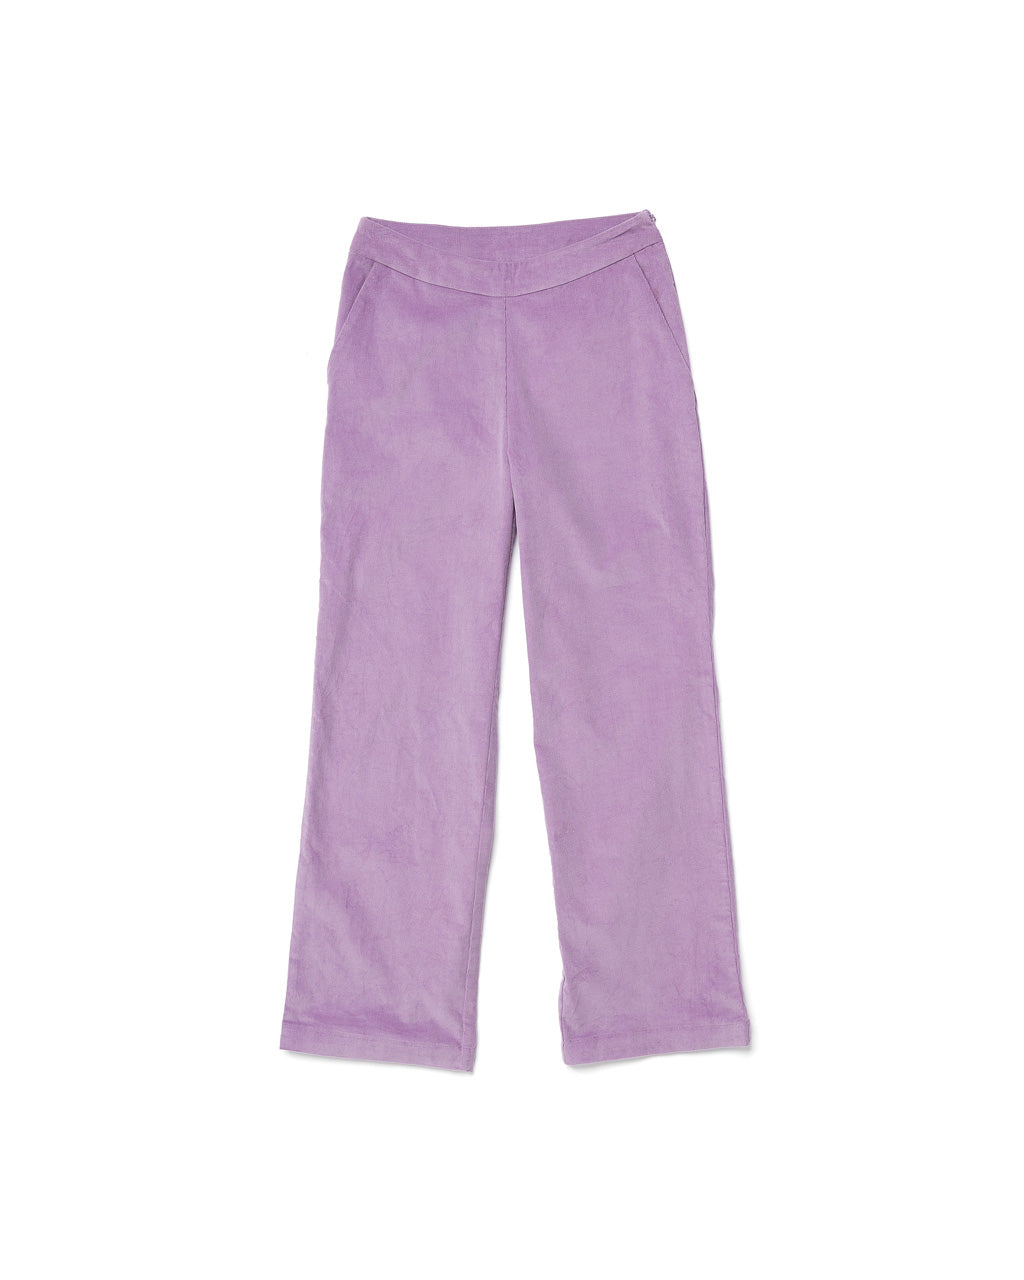 flat view of the front of the lilac corduroy trousers